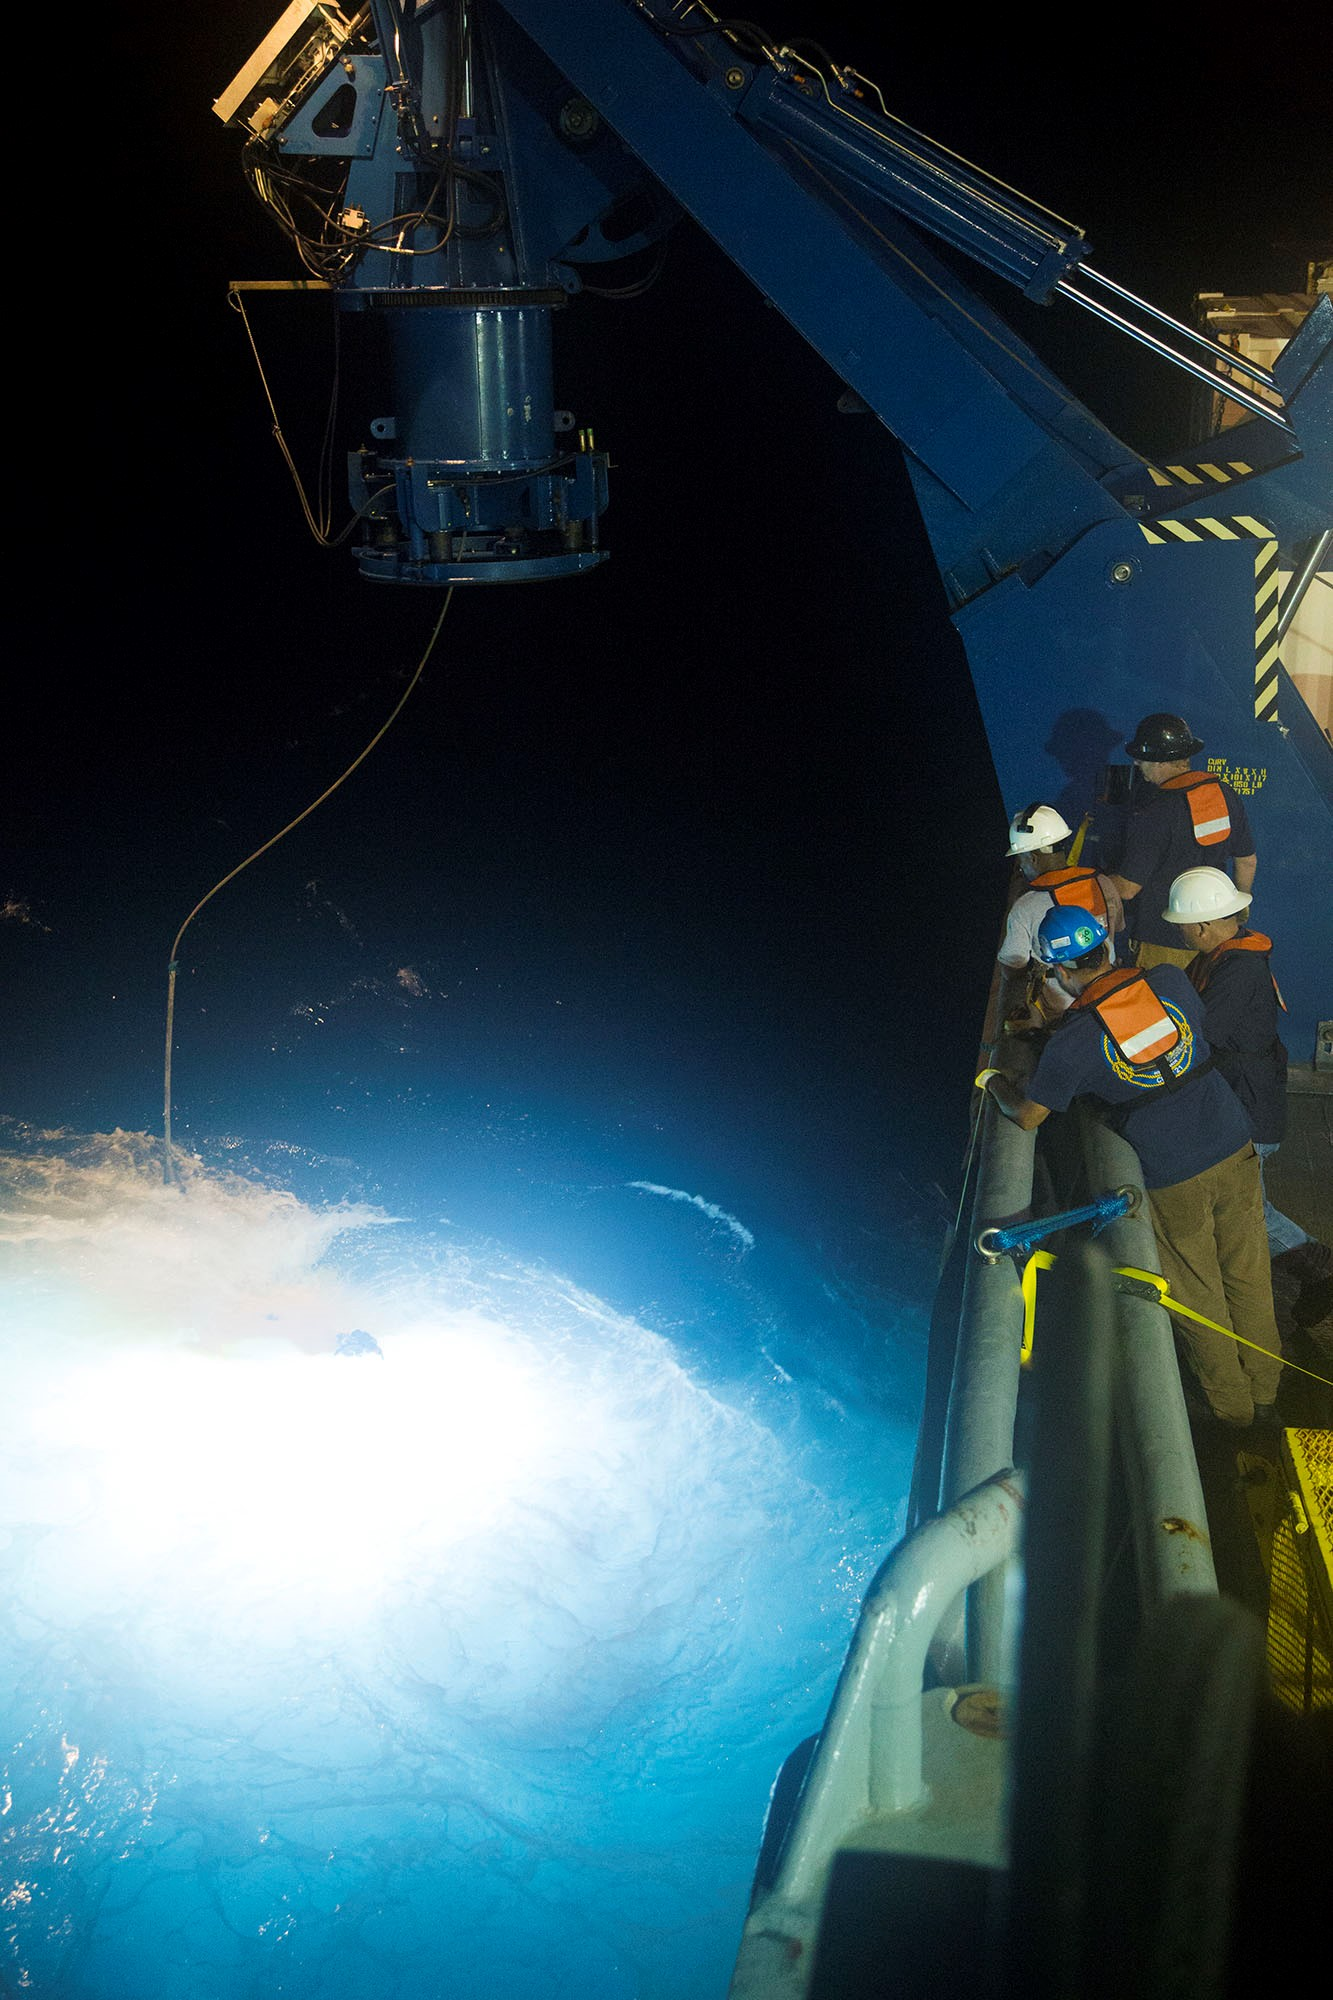 Photo (ABOARD THE USNS APACHE, ATLANTIC OCEAN) — The 6,400-pound remotely operated vehicle CURV-21 surfaces, as U.S. Navy SUPSAL